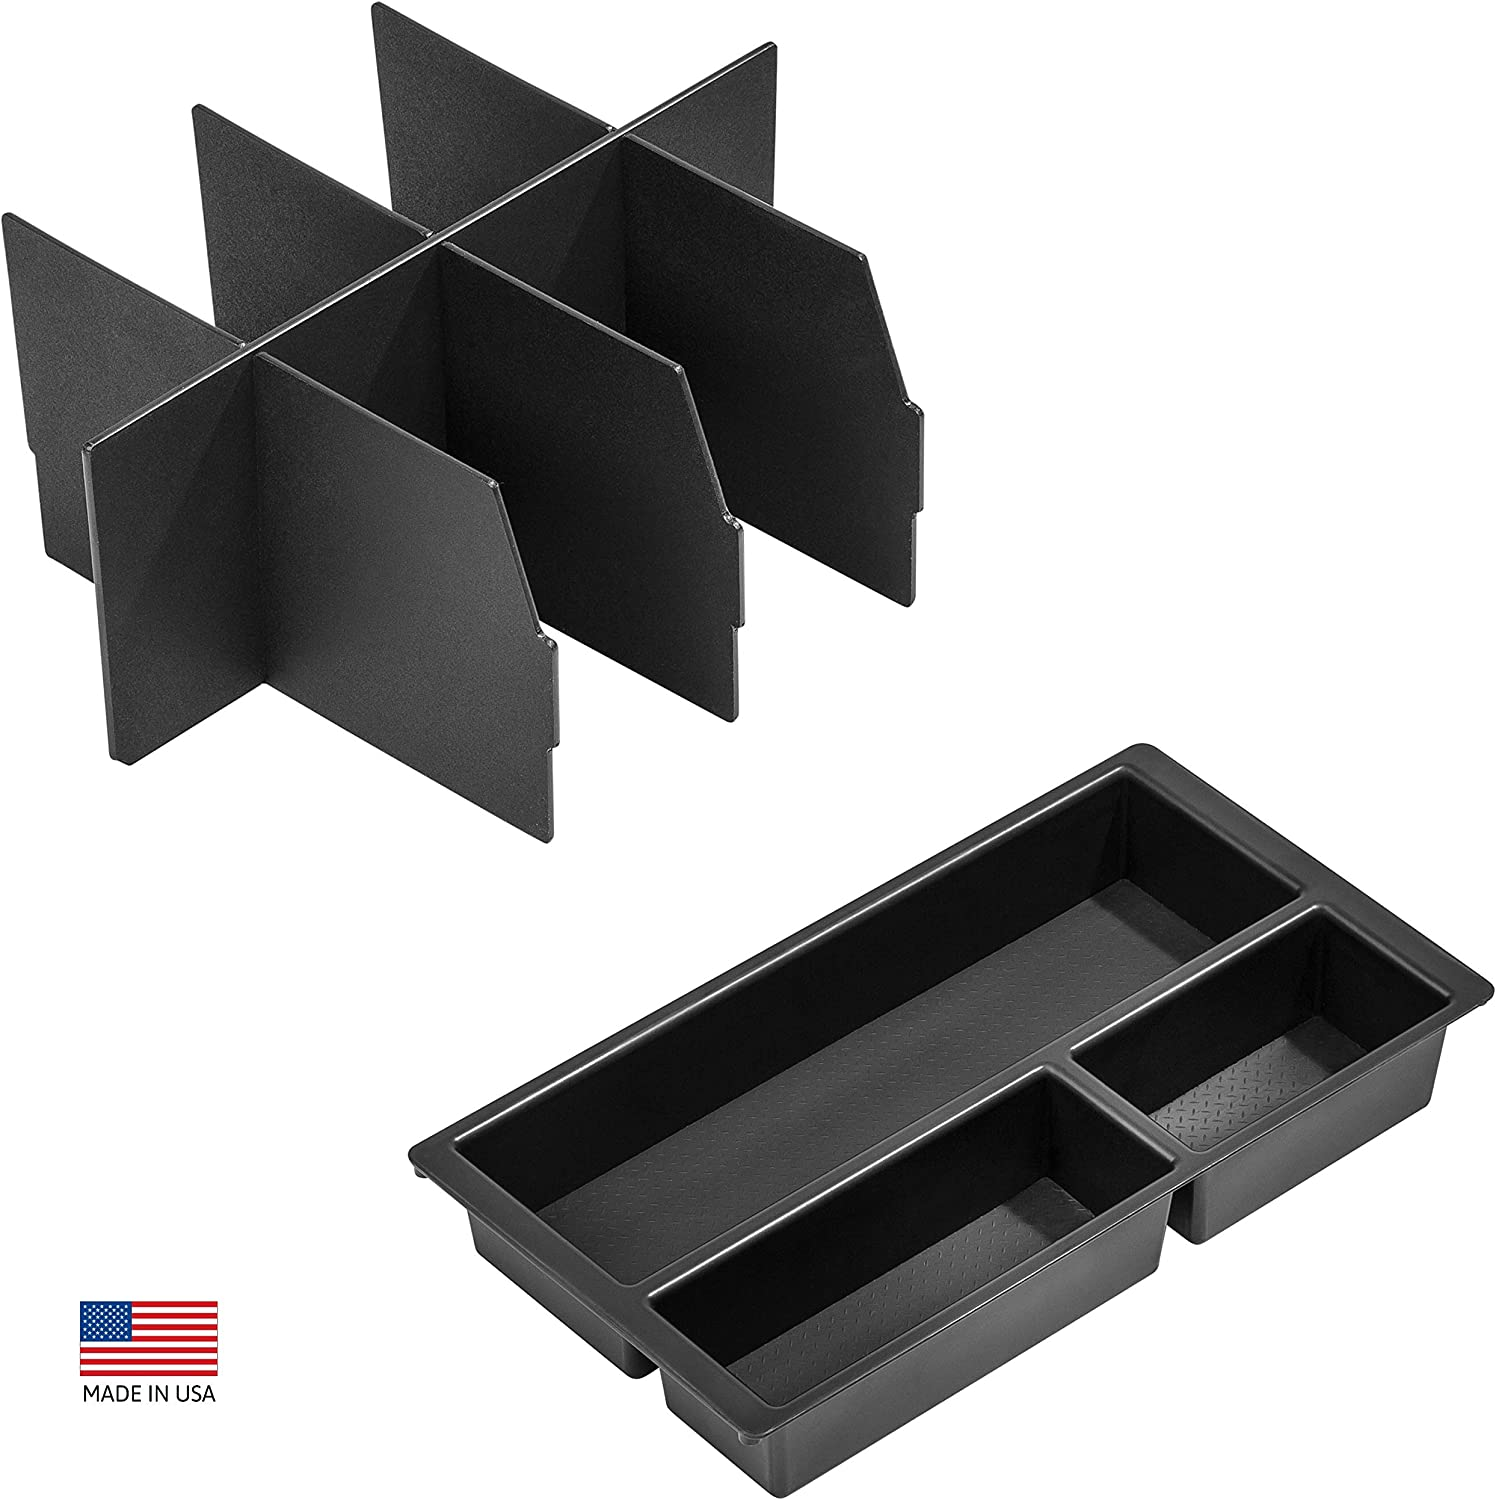 Vehicle OCD - Center Console Divider and Tray Organizer Chevy Suburban/Tahoe/GMC Yukon/XL (2015-2020) - Made in USA